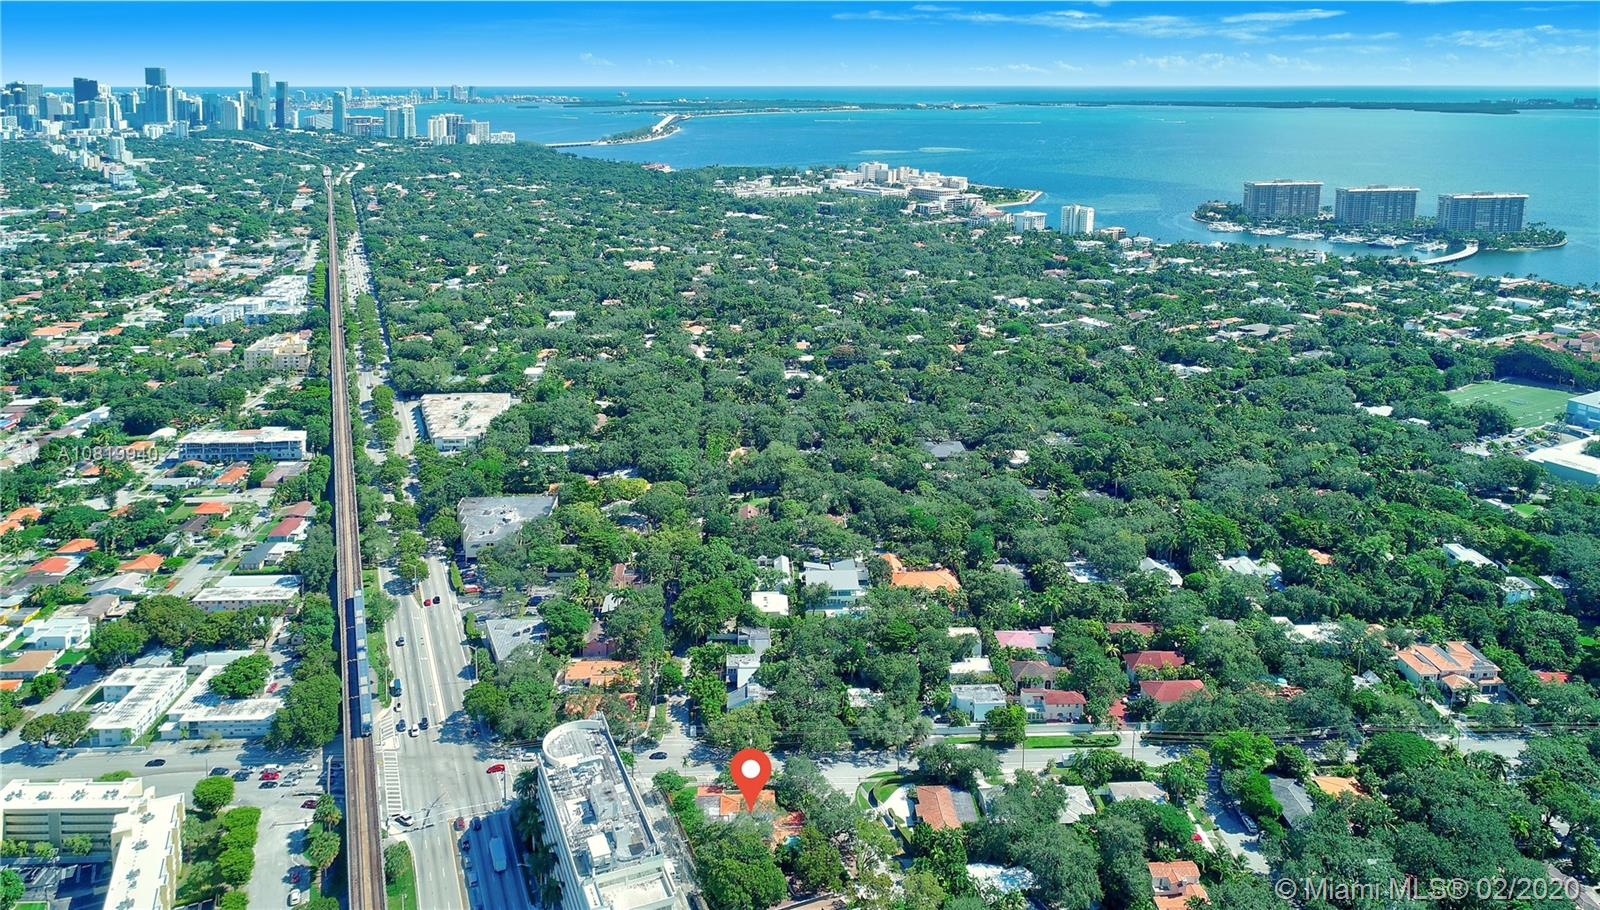 Large Single Family Home on a large Corner Lot, with 6 Bedrooms and 5 Bathrooms in the Coconut Grove Area.